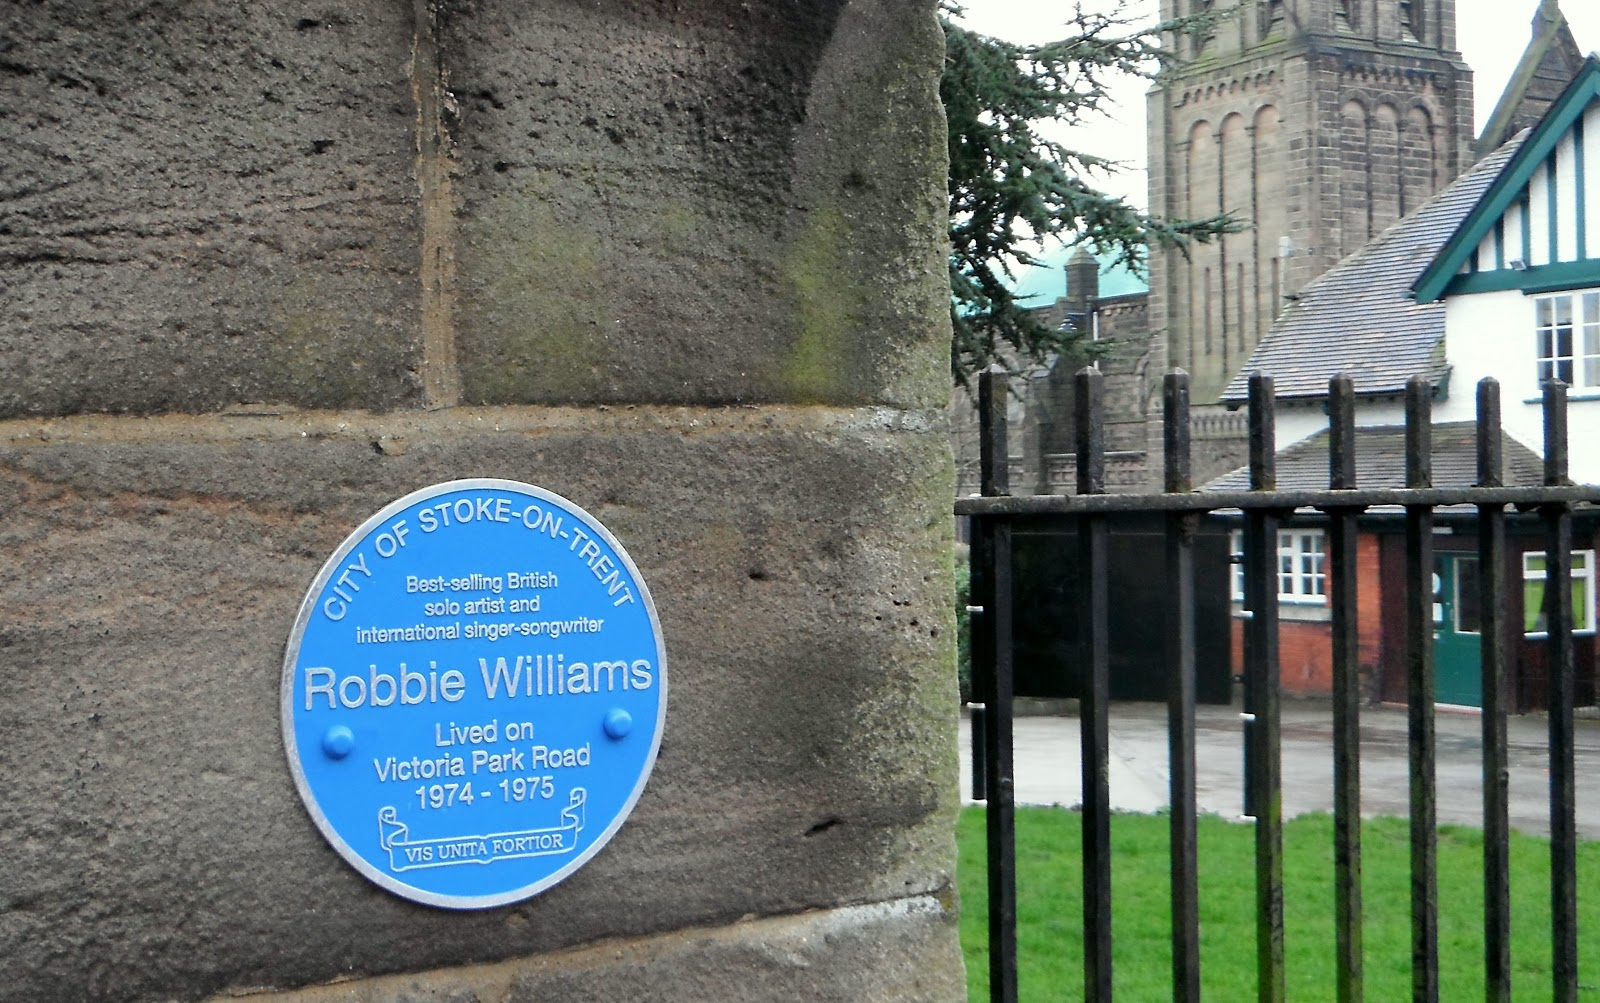 Robbie Williams plaque in Tunstall